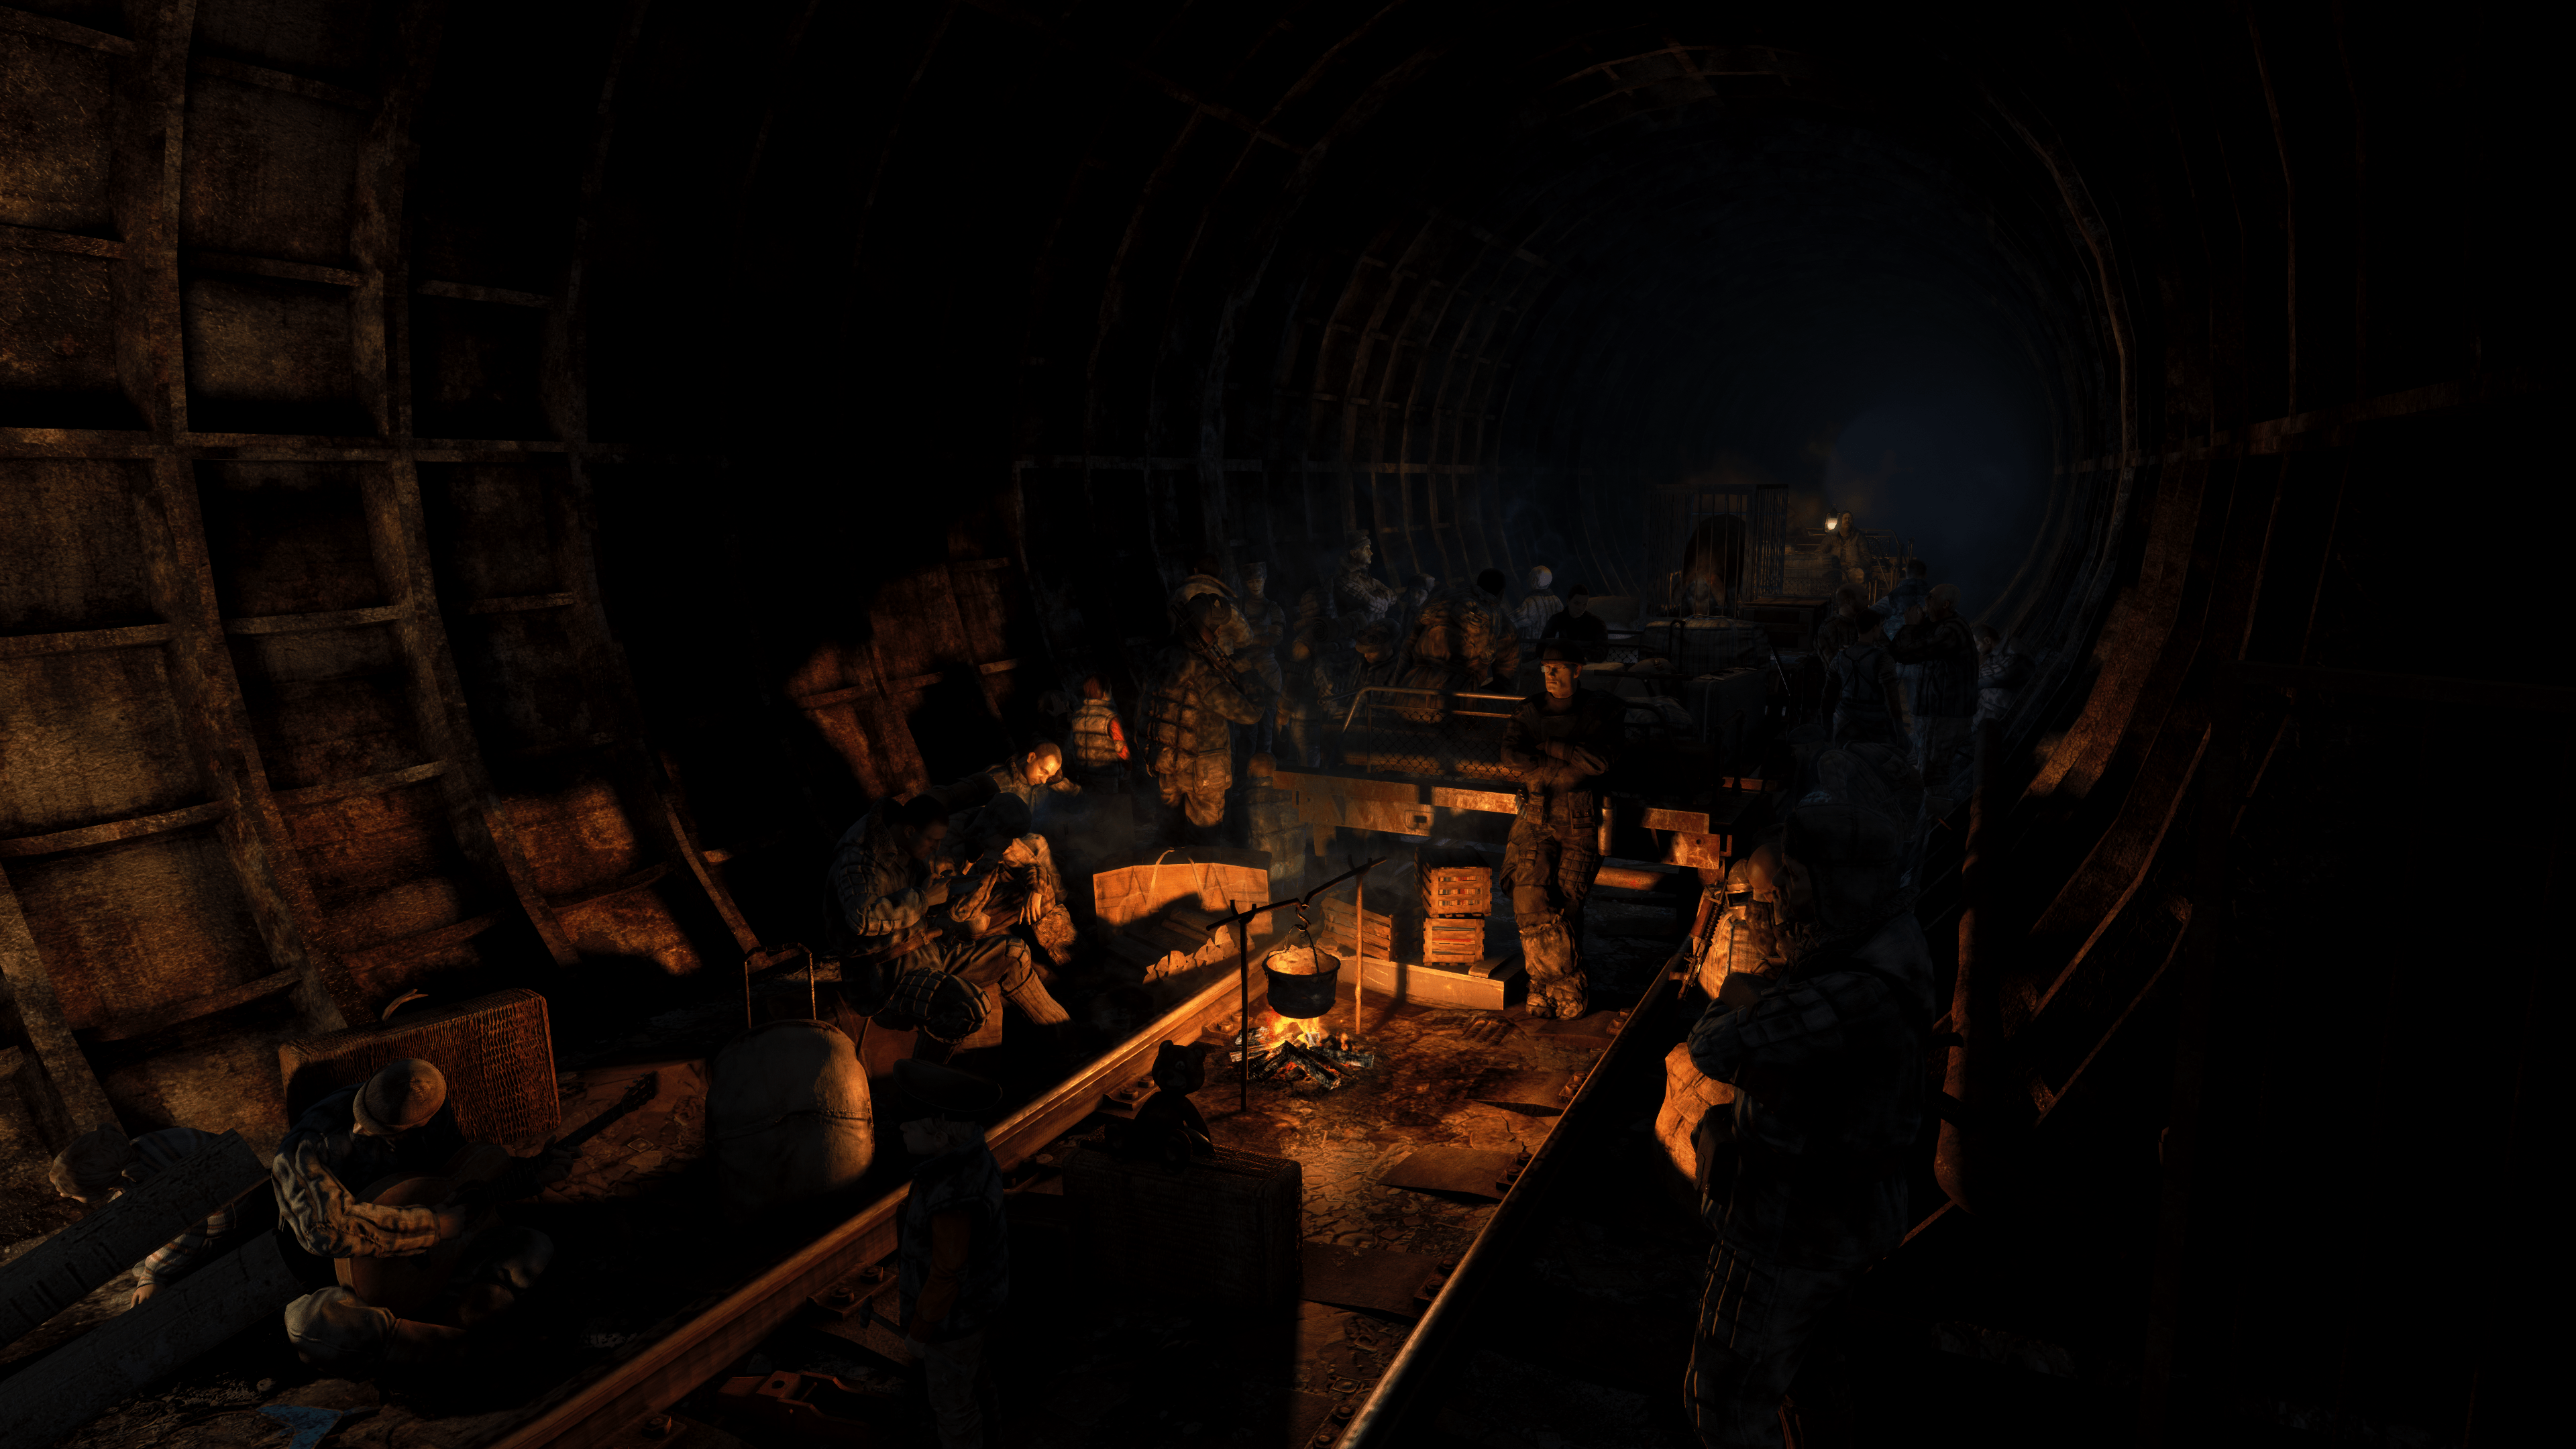 3840x2160 Metro 2033 Redux 4k Ultra HD Wallpaper and Background Image ...